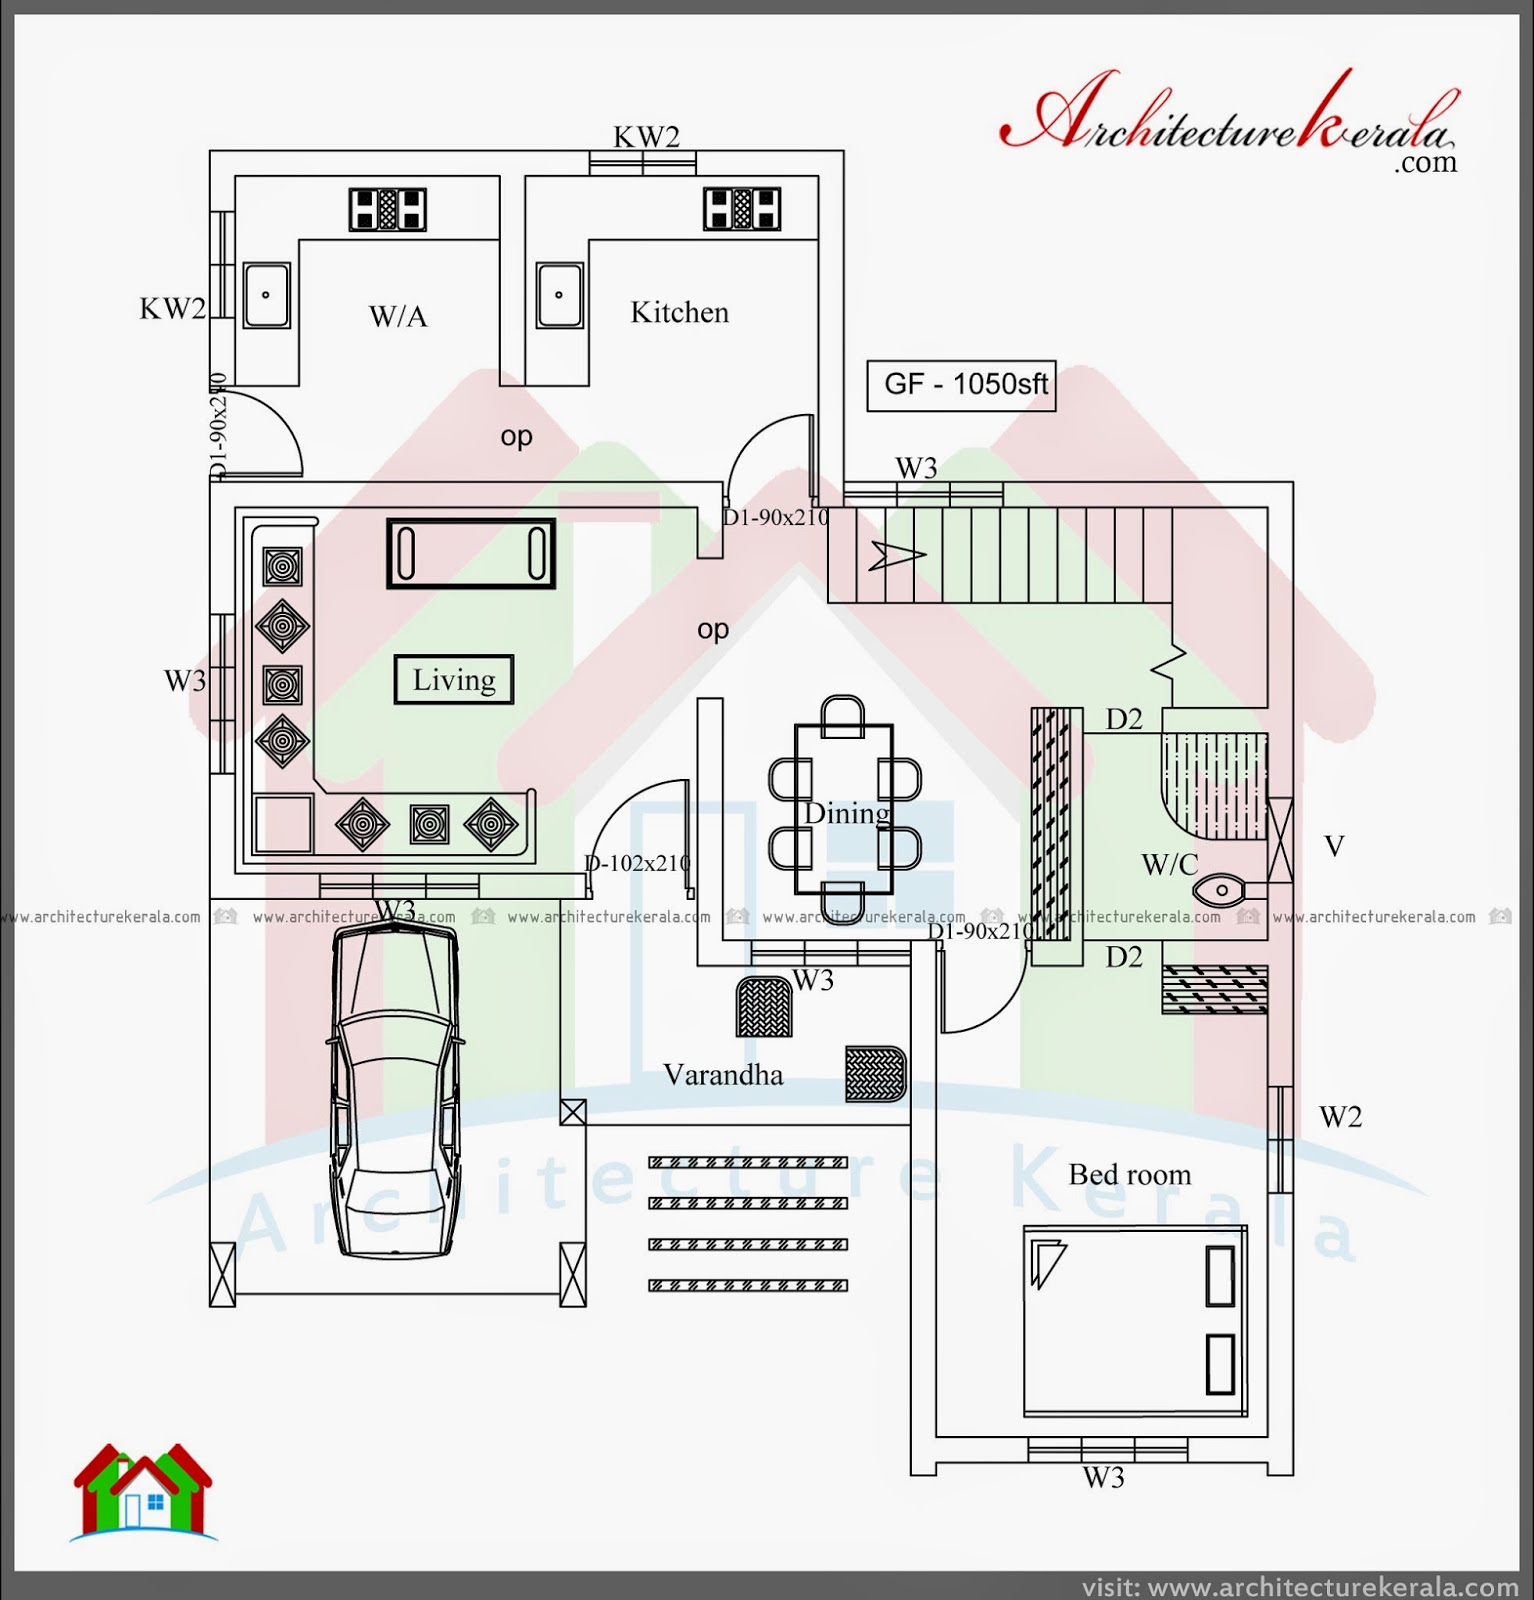 Three bedroom two storey house plan architecture kerala for 2 story house plans